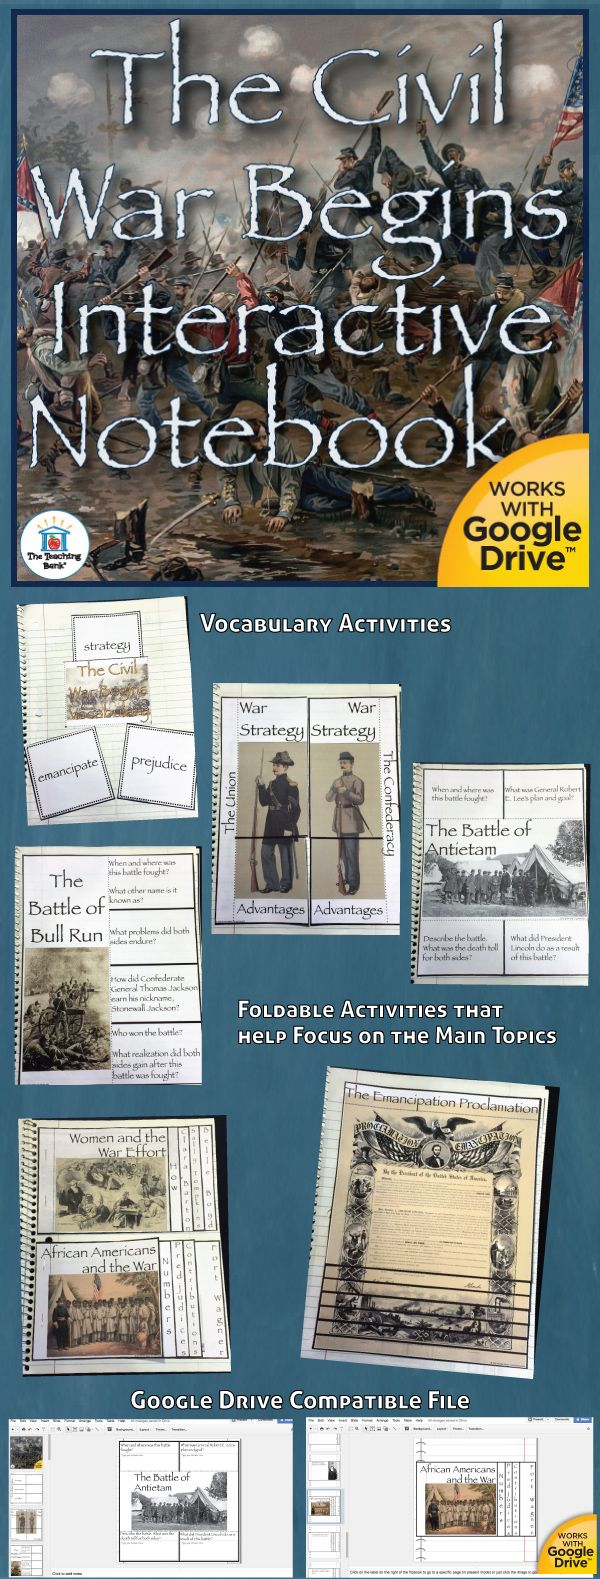 The Civil War Begins Interactive Notebook, which works for both print and Google Drive™, investigates and helps gain understanding of major battles, events, and important contributions during the Civil War. Geared as a unit in the 5th grade study of United States History.